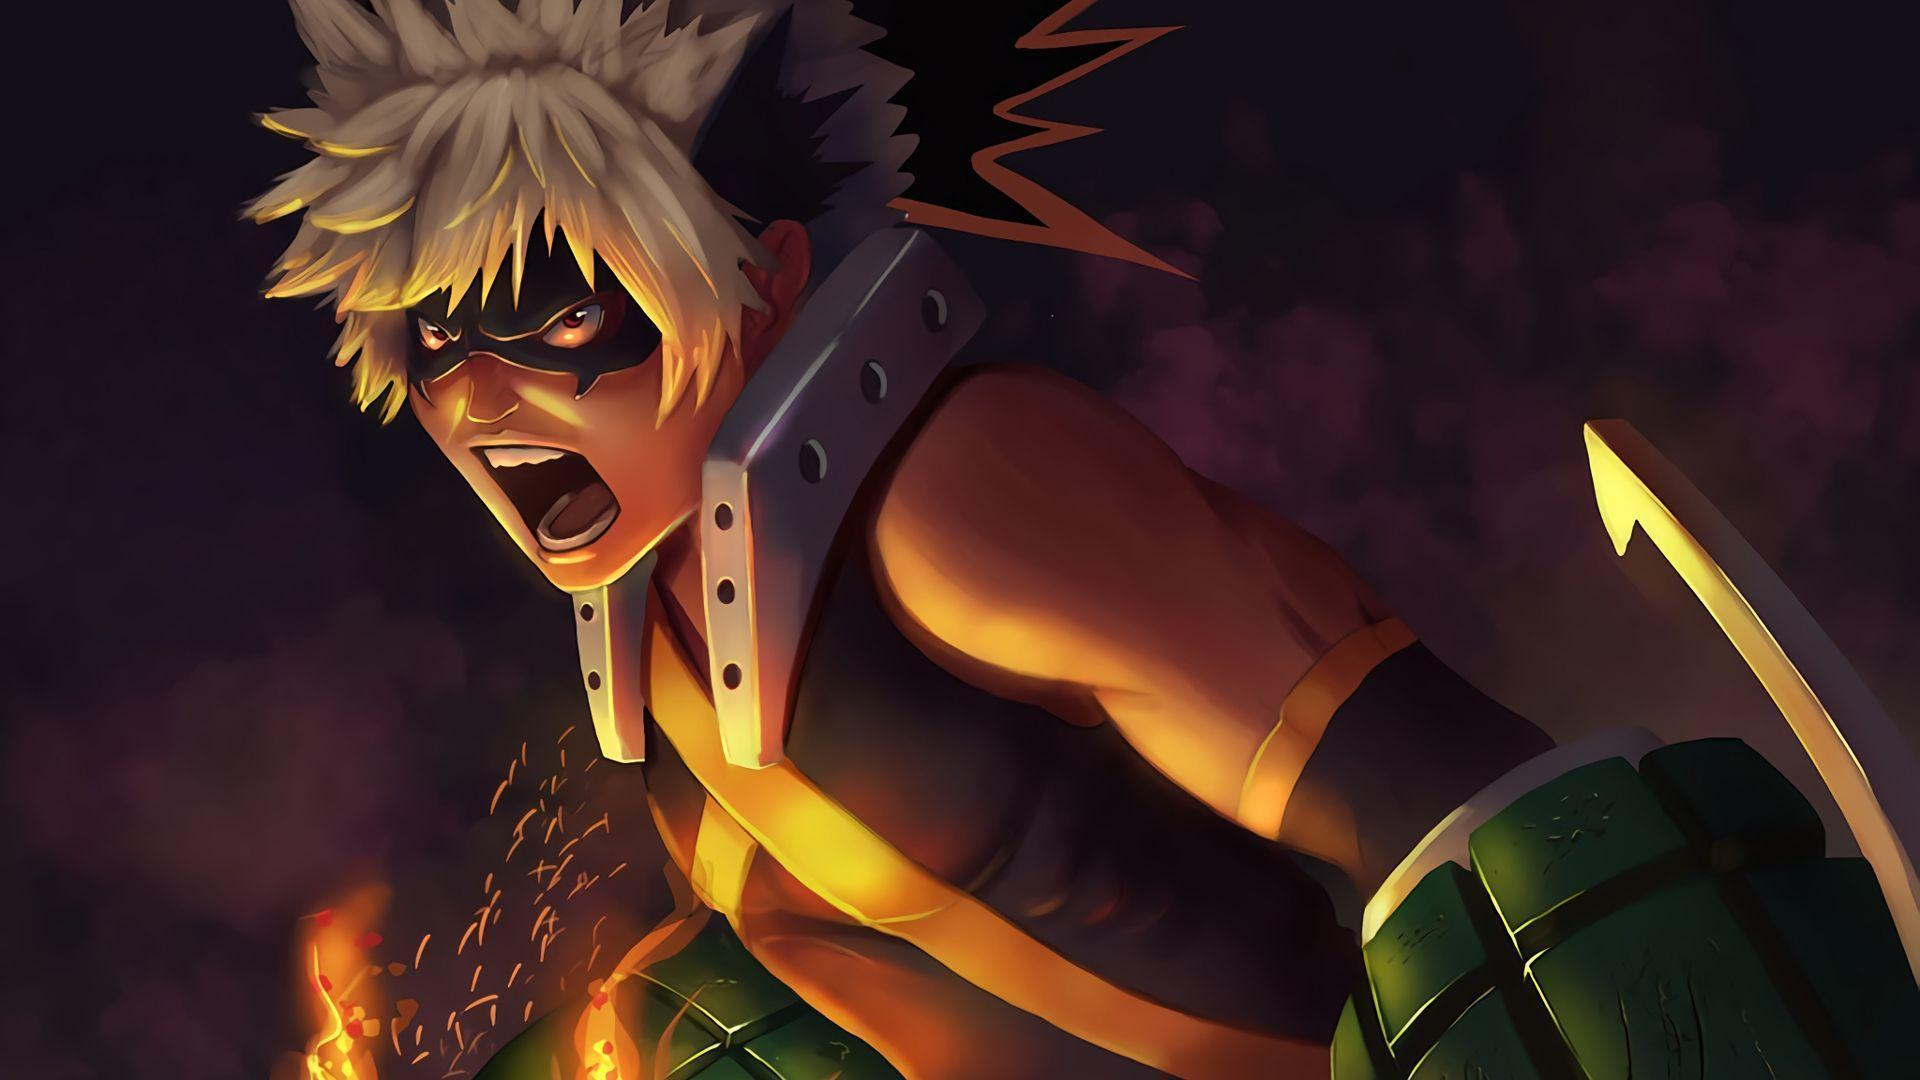 Tons of awesome my hero academia deku wallpapers to download for free. My Hero Academia HD Wallpapers - Wallpaper Cave